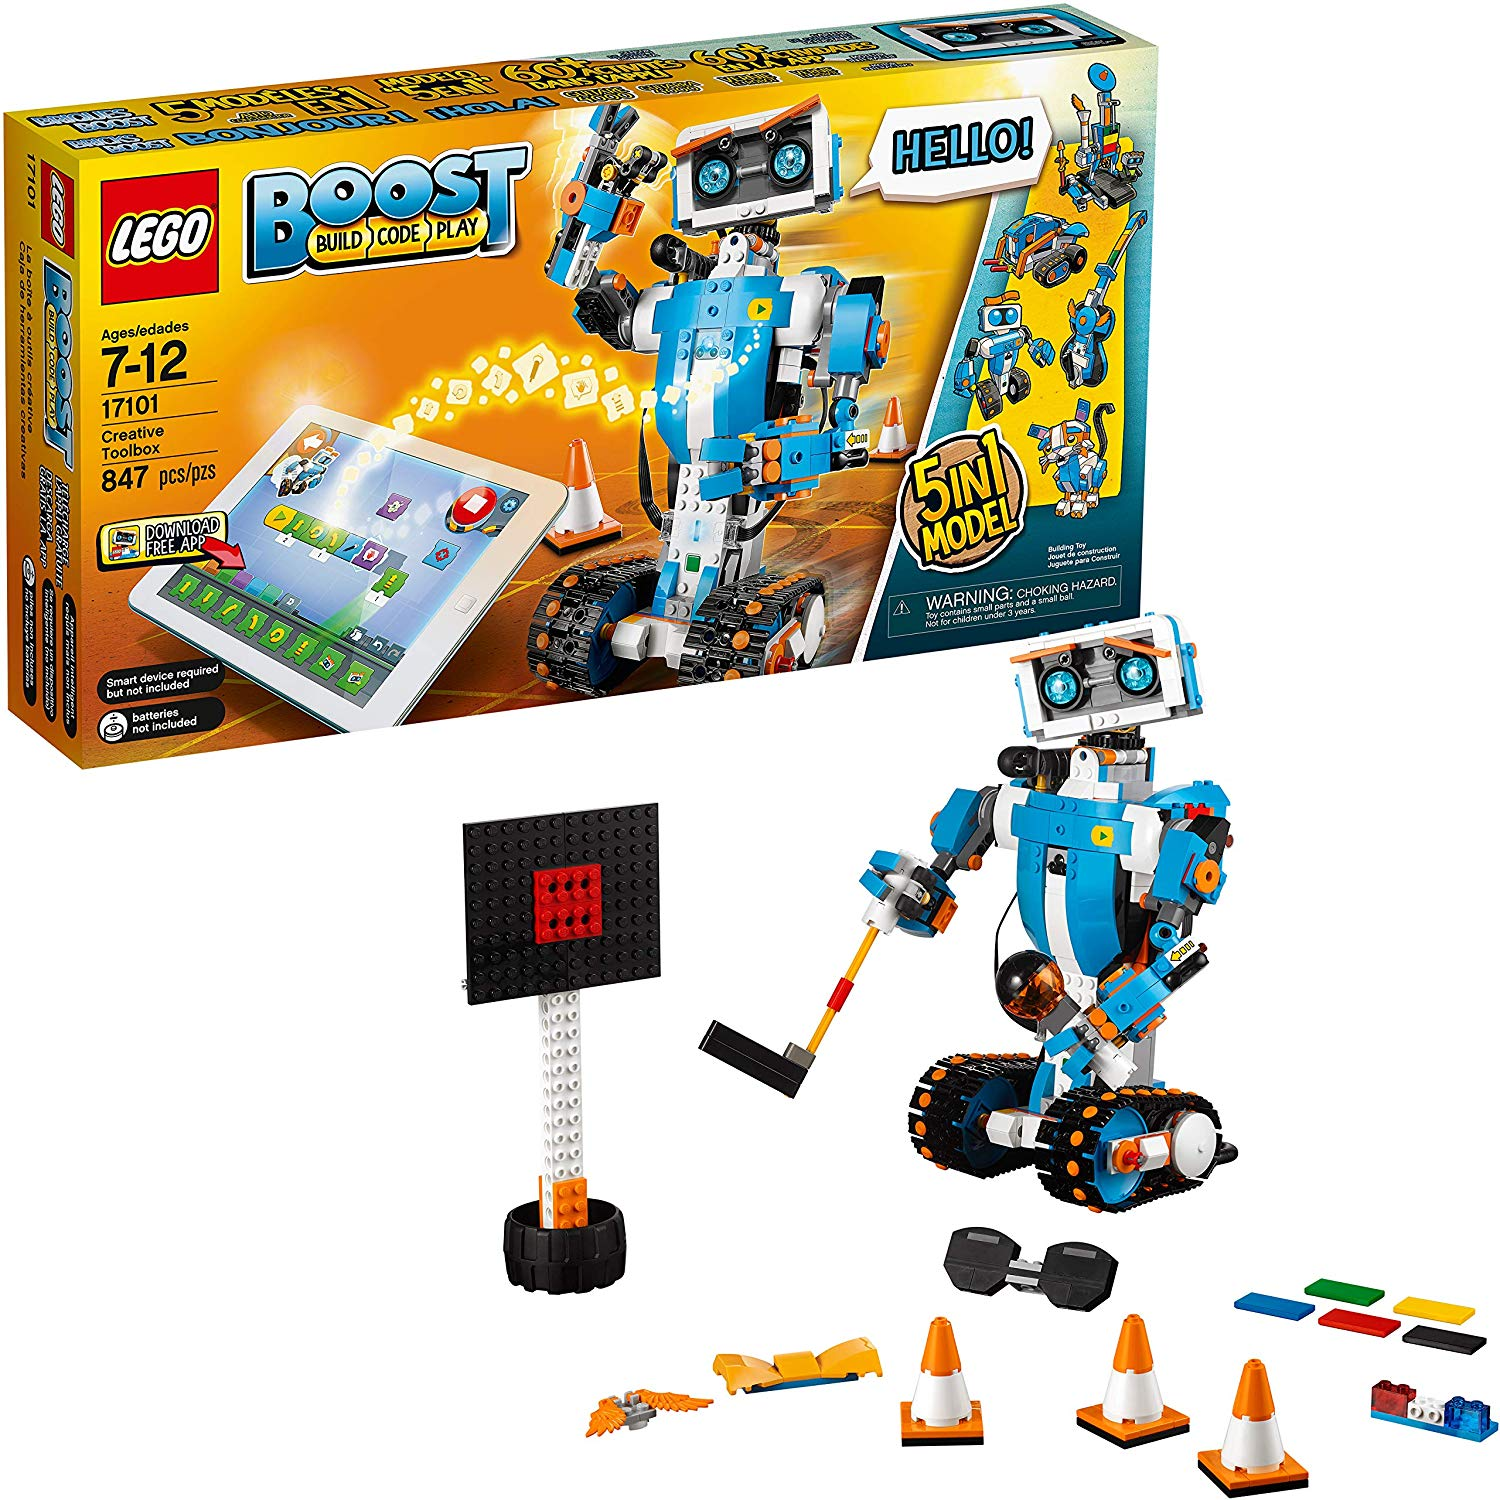 Lego Boost Creative Toolbox- best gifts for kids